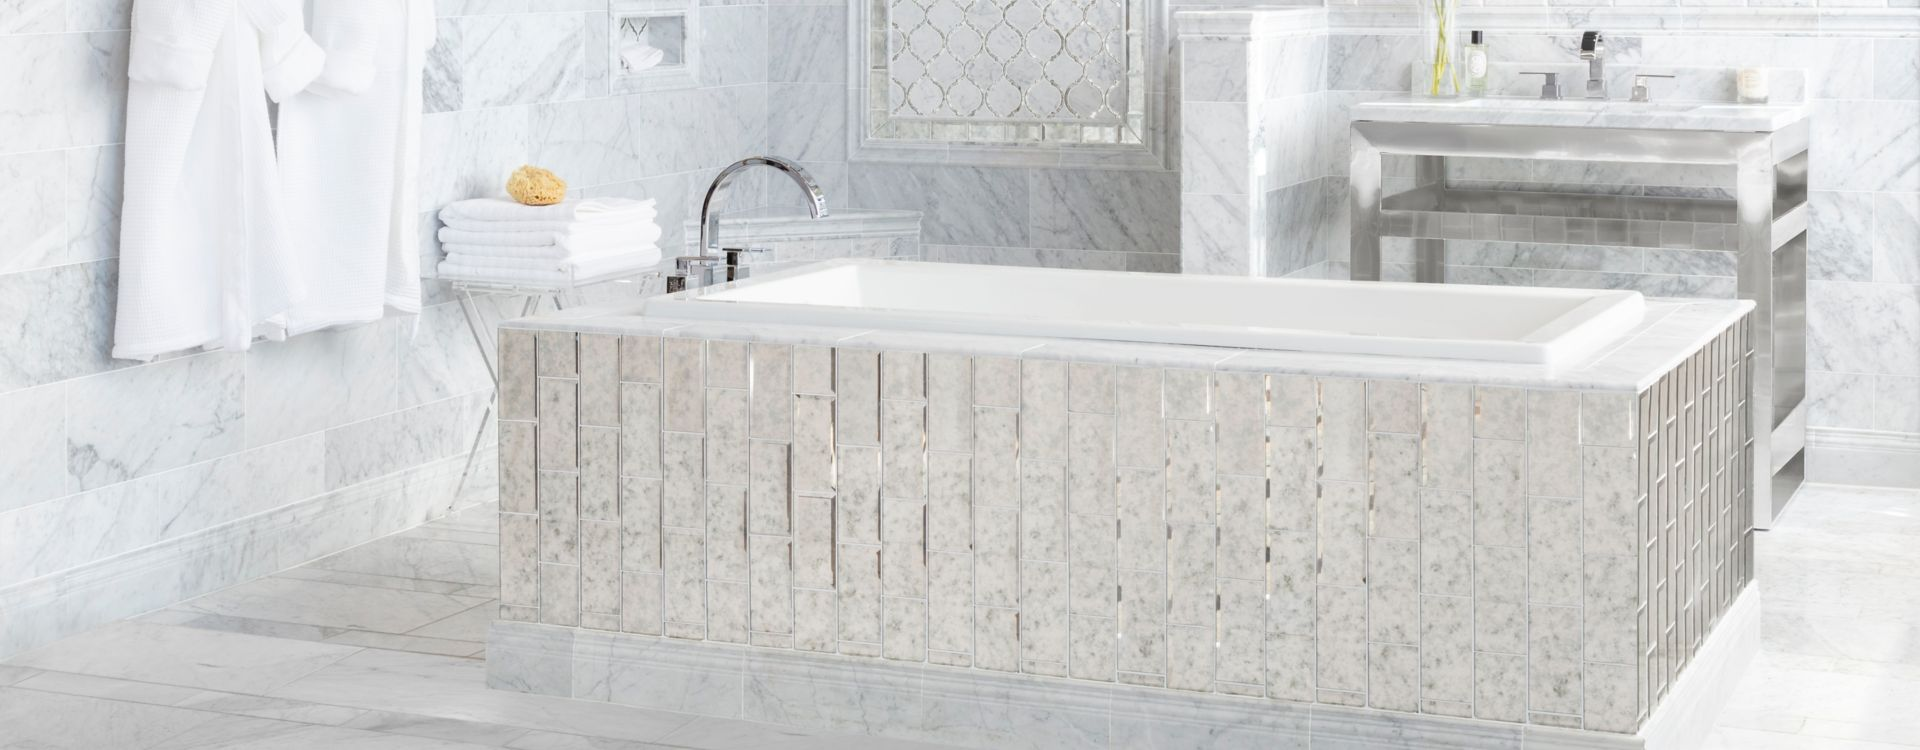 Bathroom Tile Designs, Trends & Ideas for 2019 – The Tile Shop